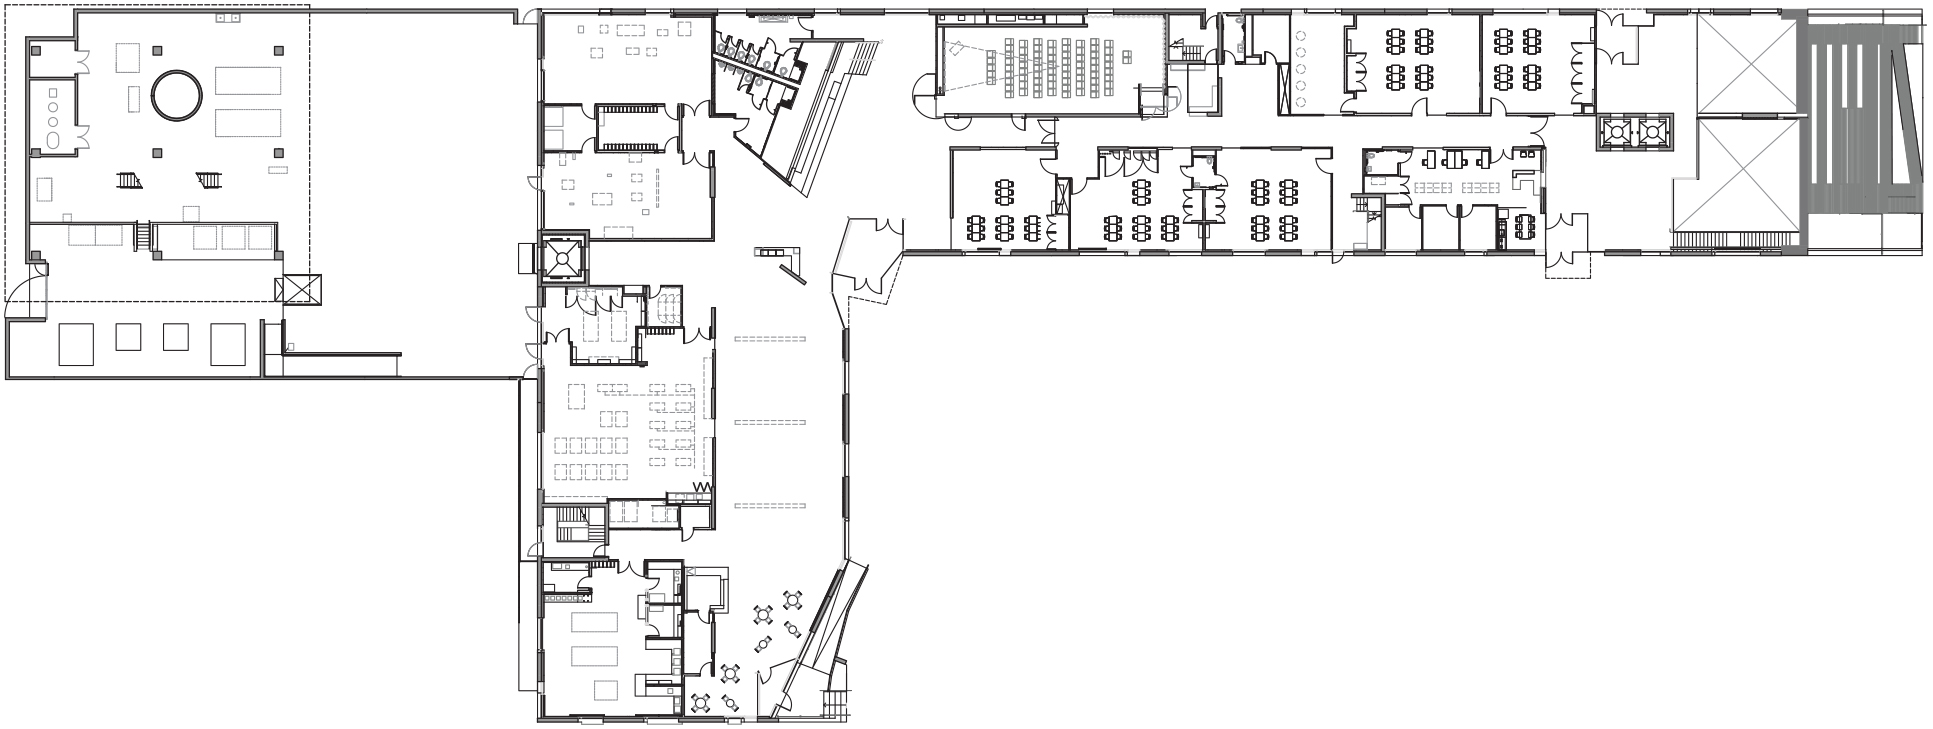 SHA_Level 1 Floor Plan_eh